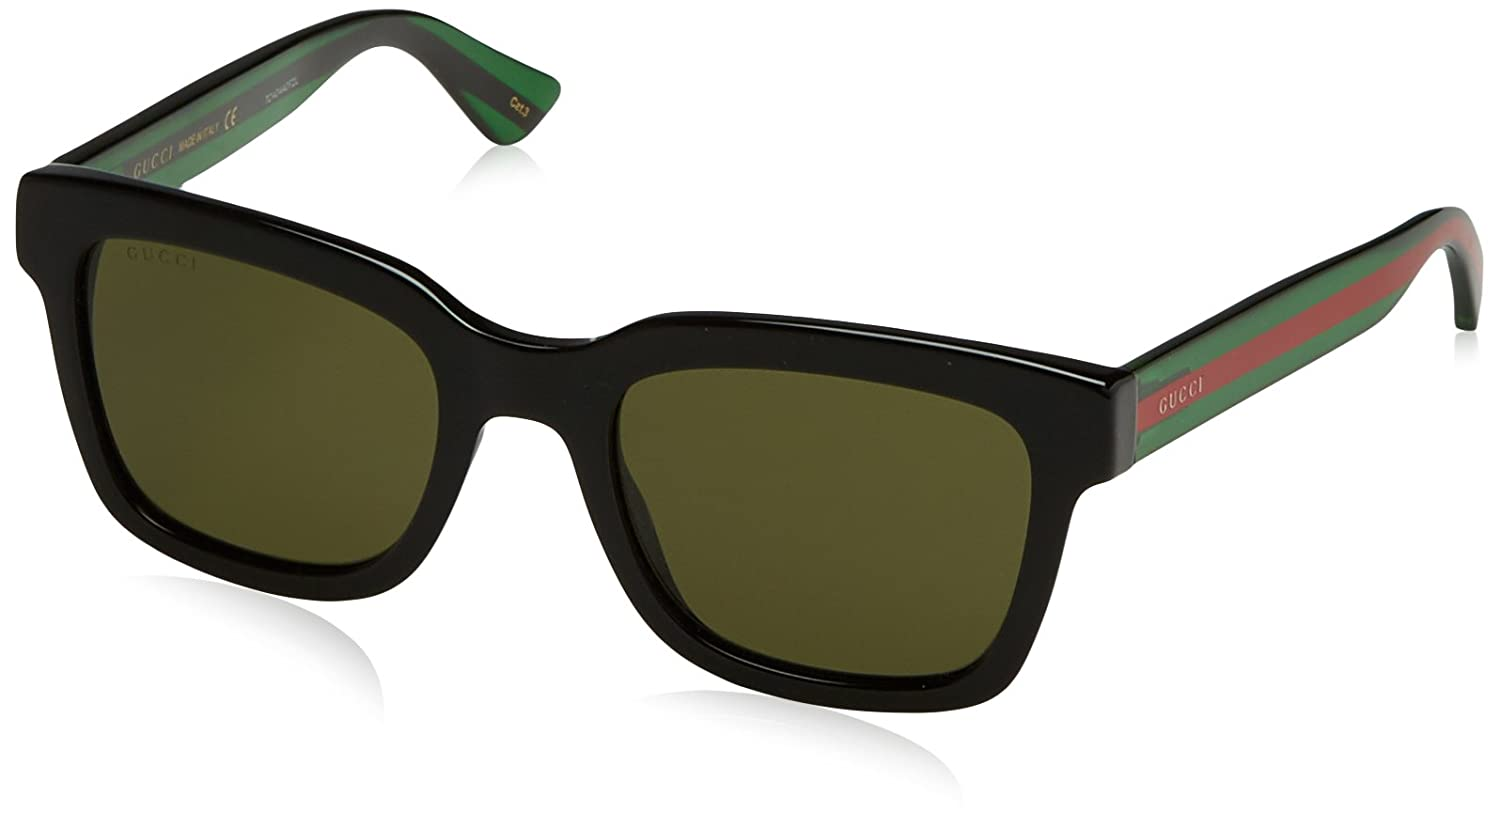 Gucci - GG0001S, Geometrico, acetato, uomo, BLACK STRIPED GREEN/GREEN(002 B), 52/21/145